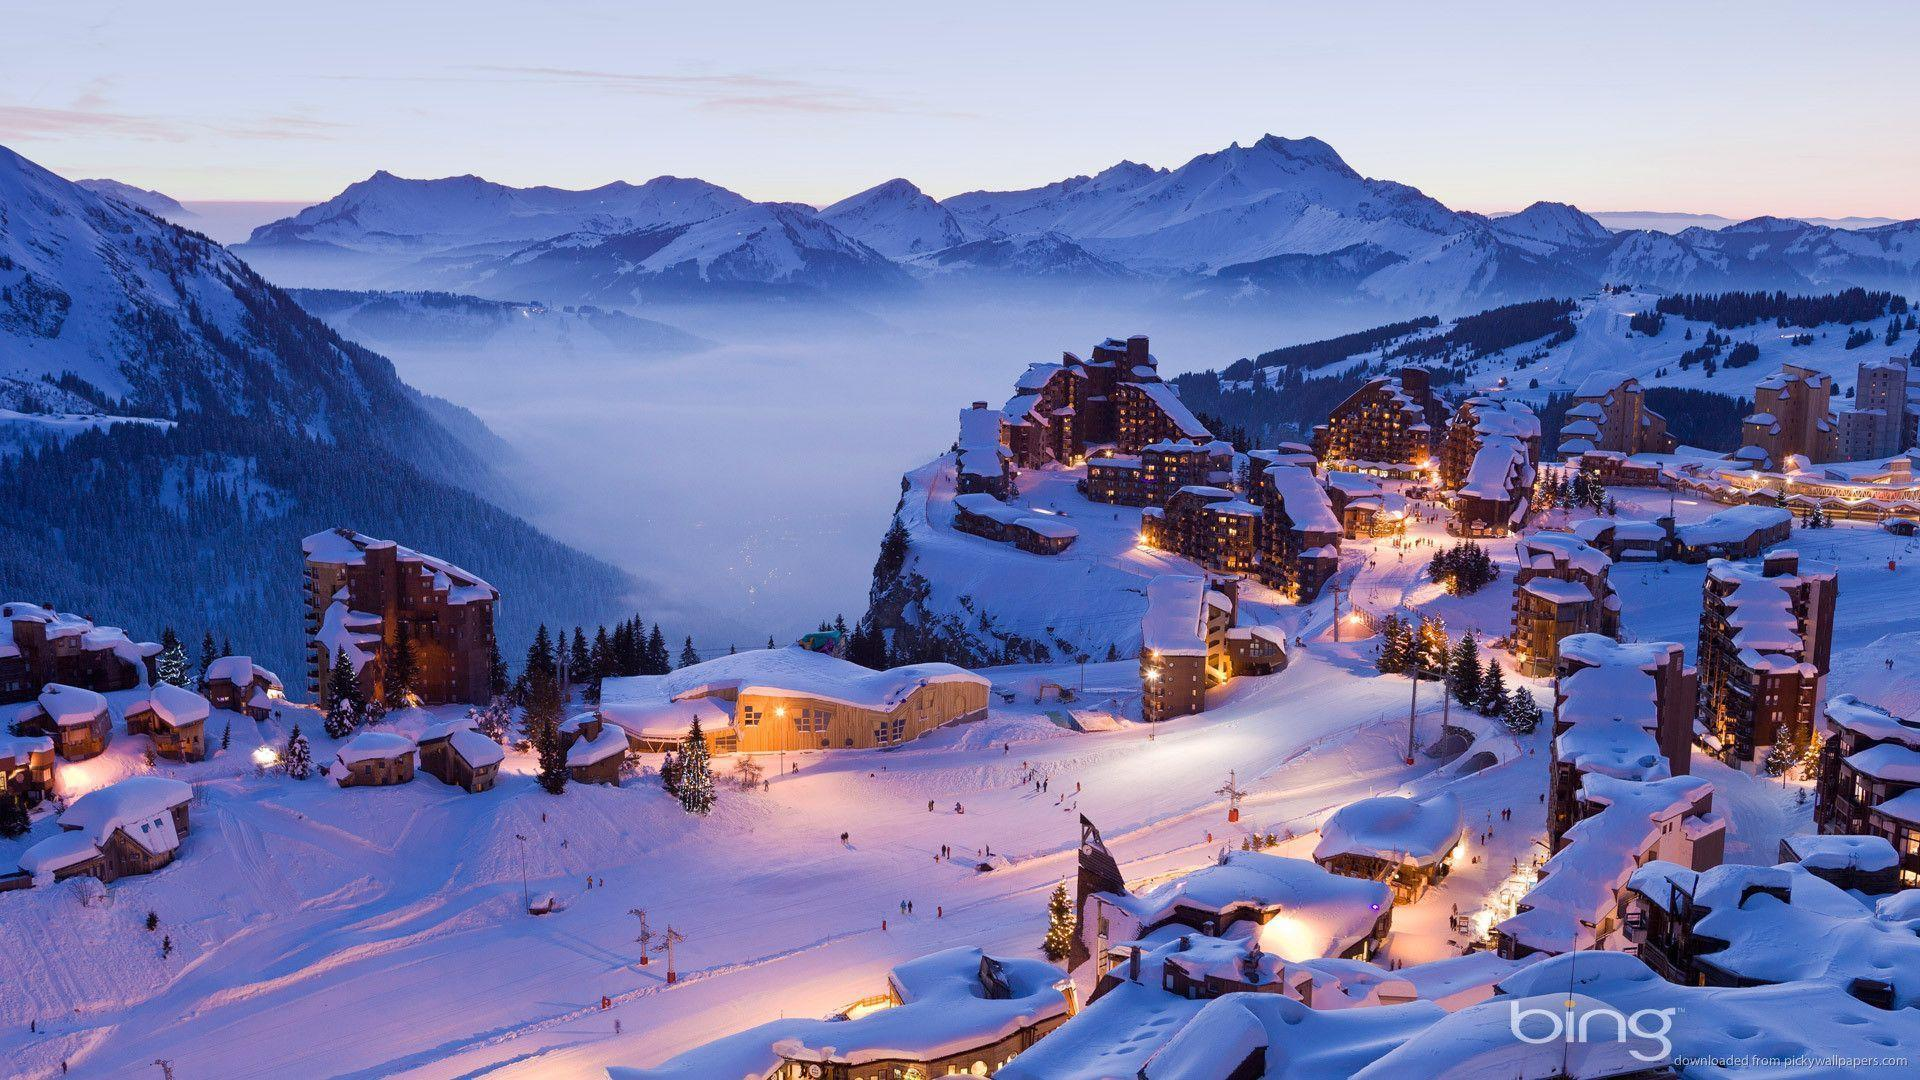 bing wallpaper hd bing winter village wallpaper 4161 ssofc